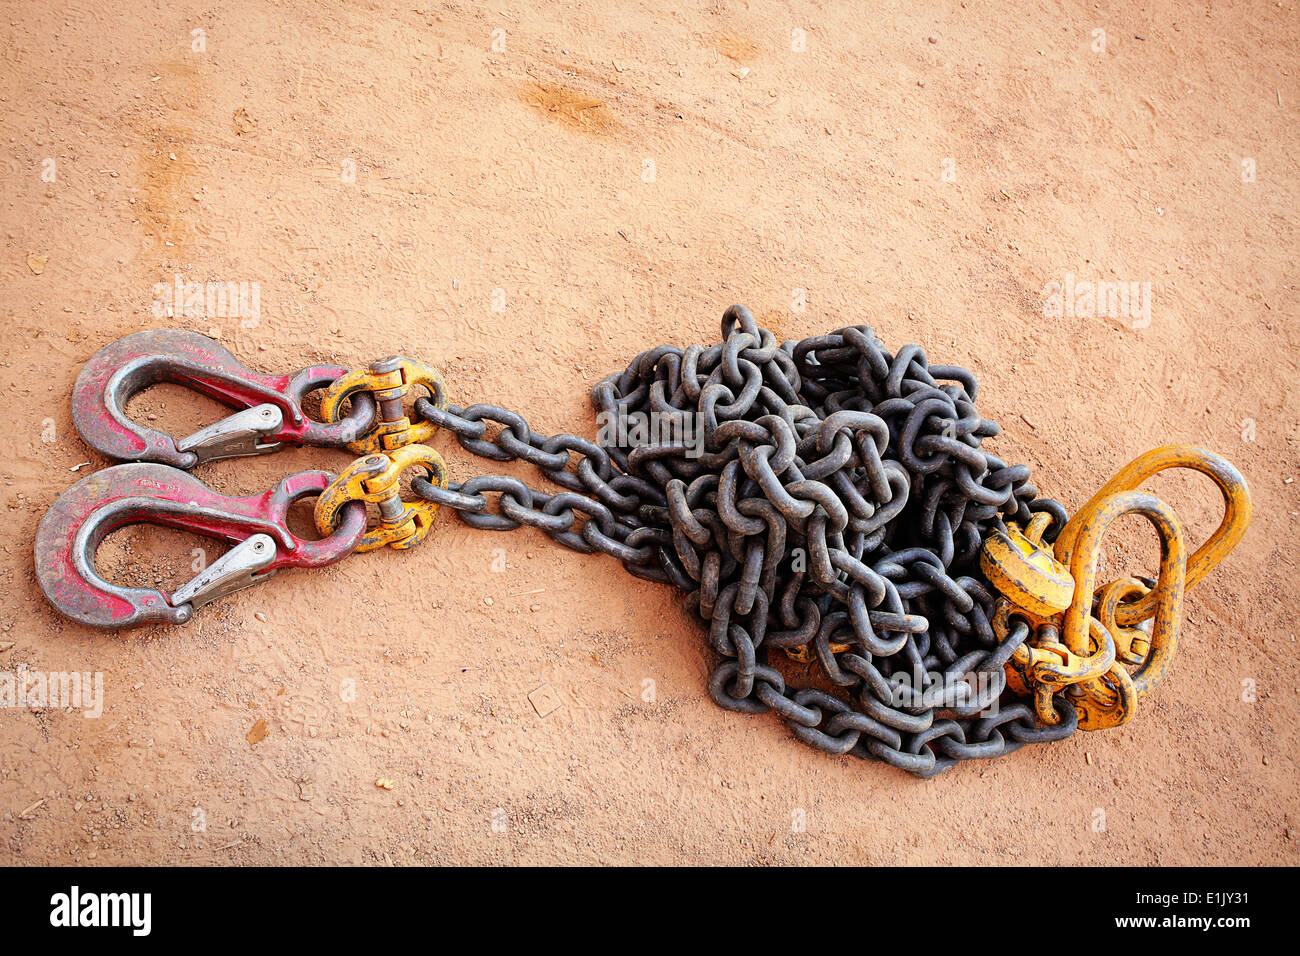 Industrial strength lifting chains and sling hooks in a heap on the ground - Stock Image